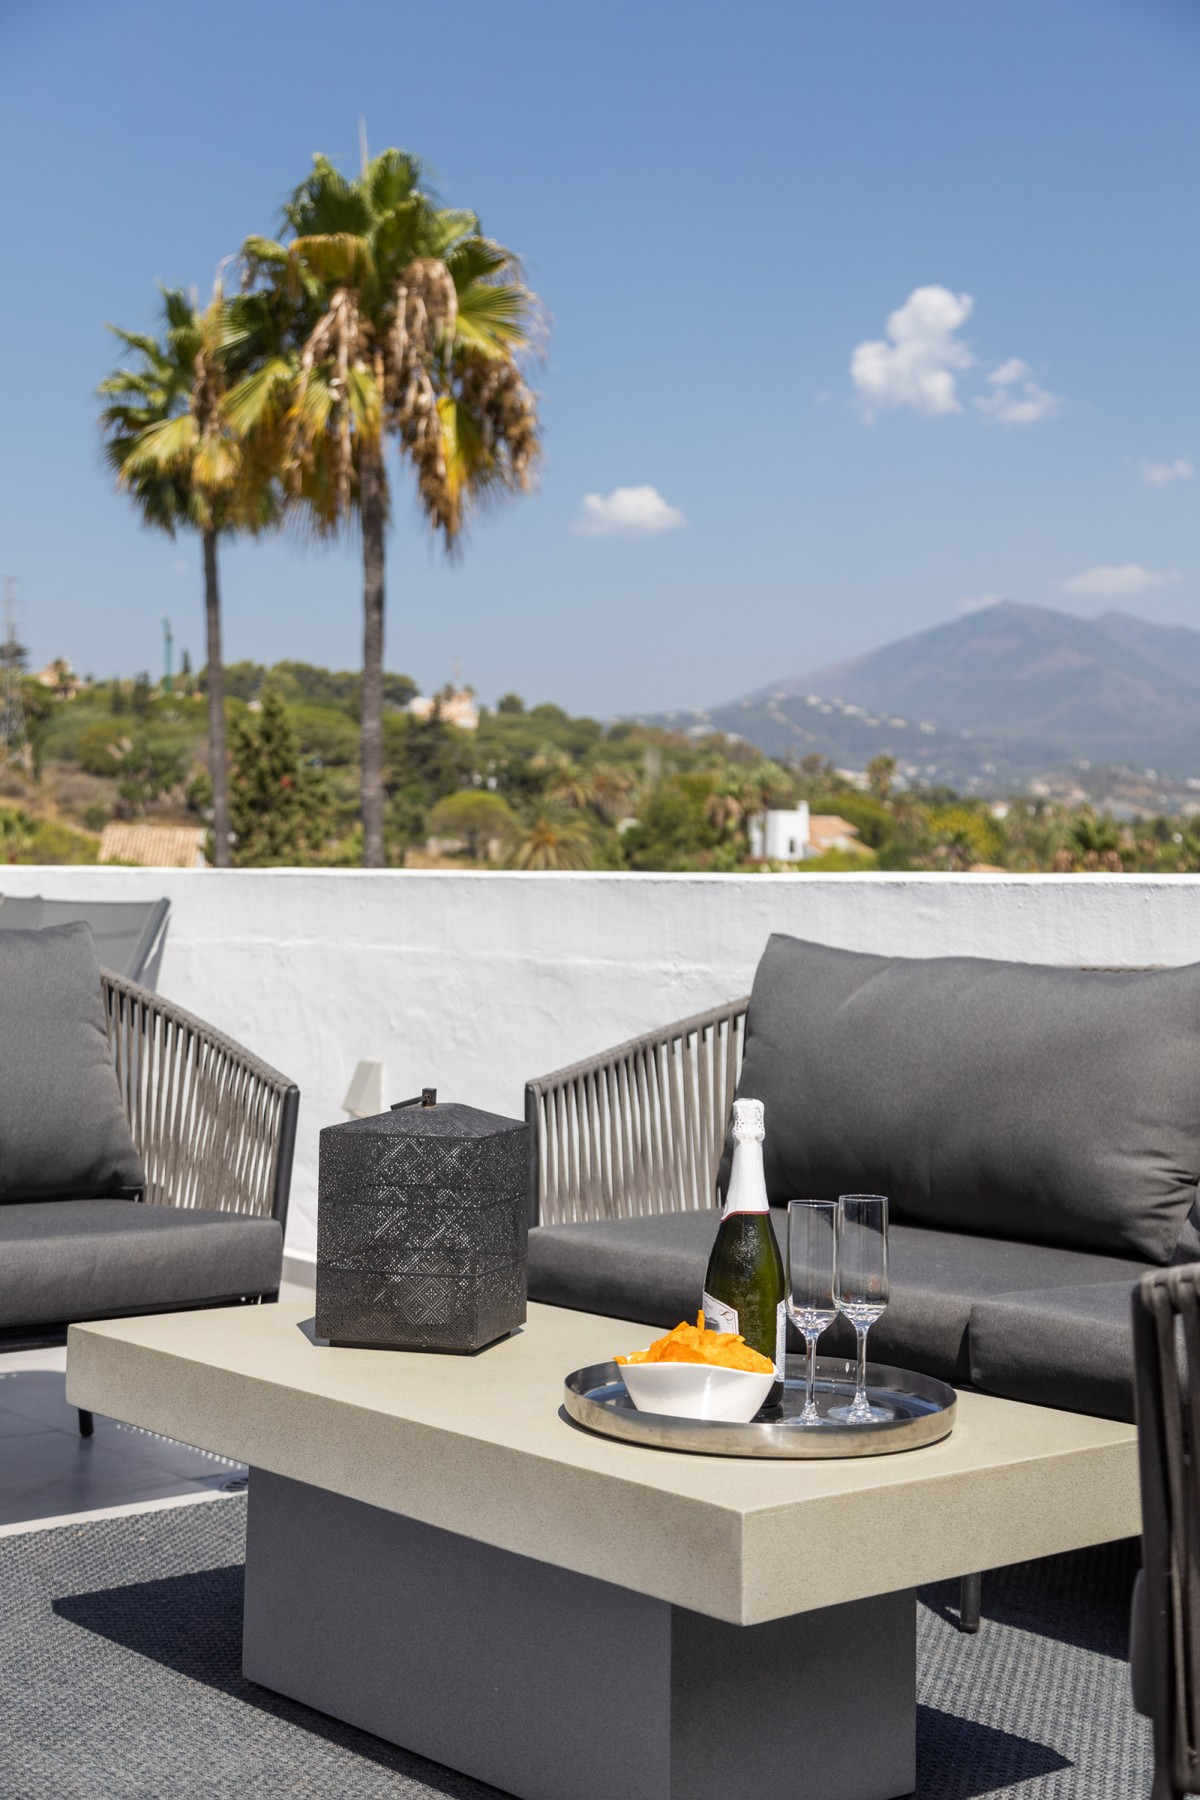 INVESTMENT Opportunity! Large Luxury Penthouse with Panoramic Views in Nueva Andalucía, Marbella